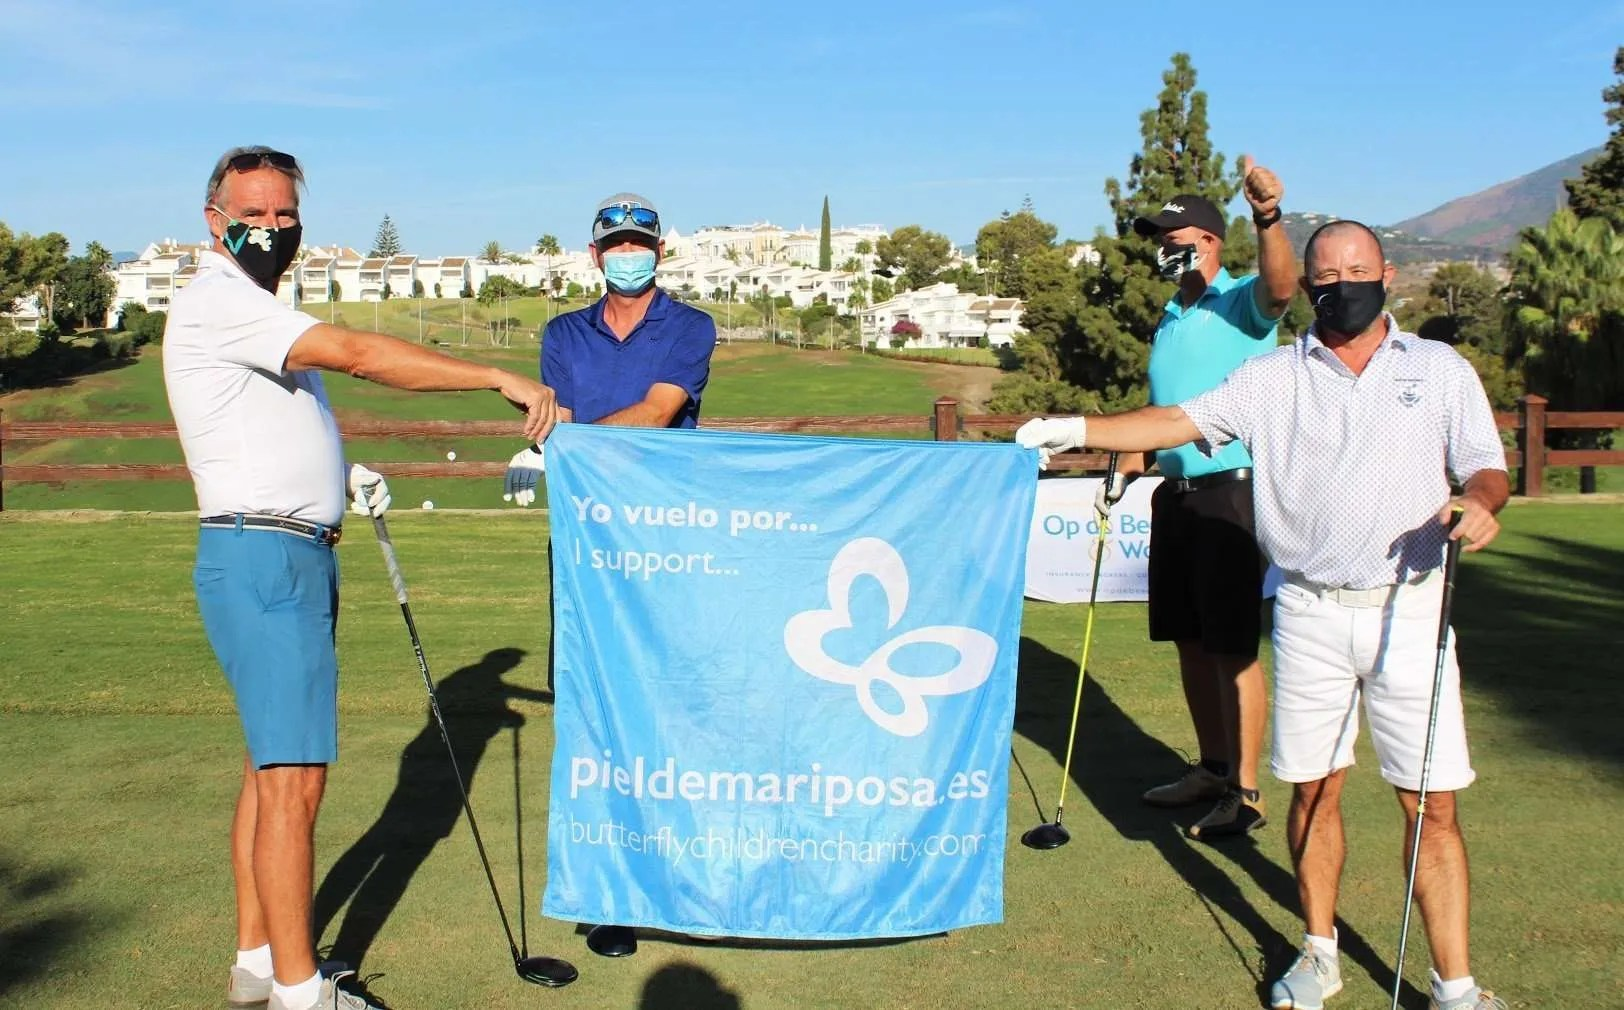 The Aloha Golf Event raised over 17,000 euros